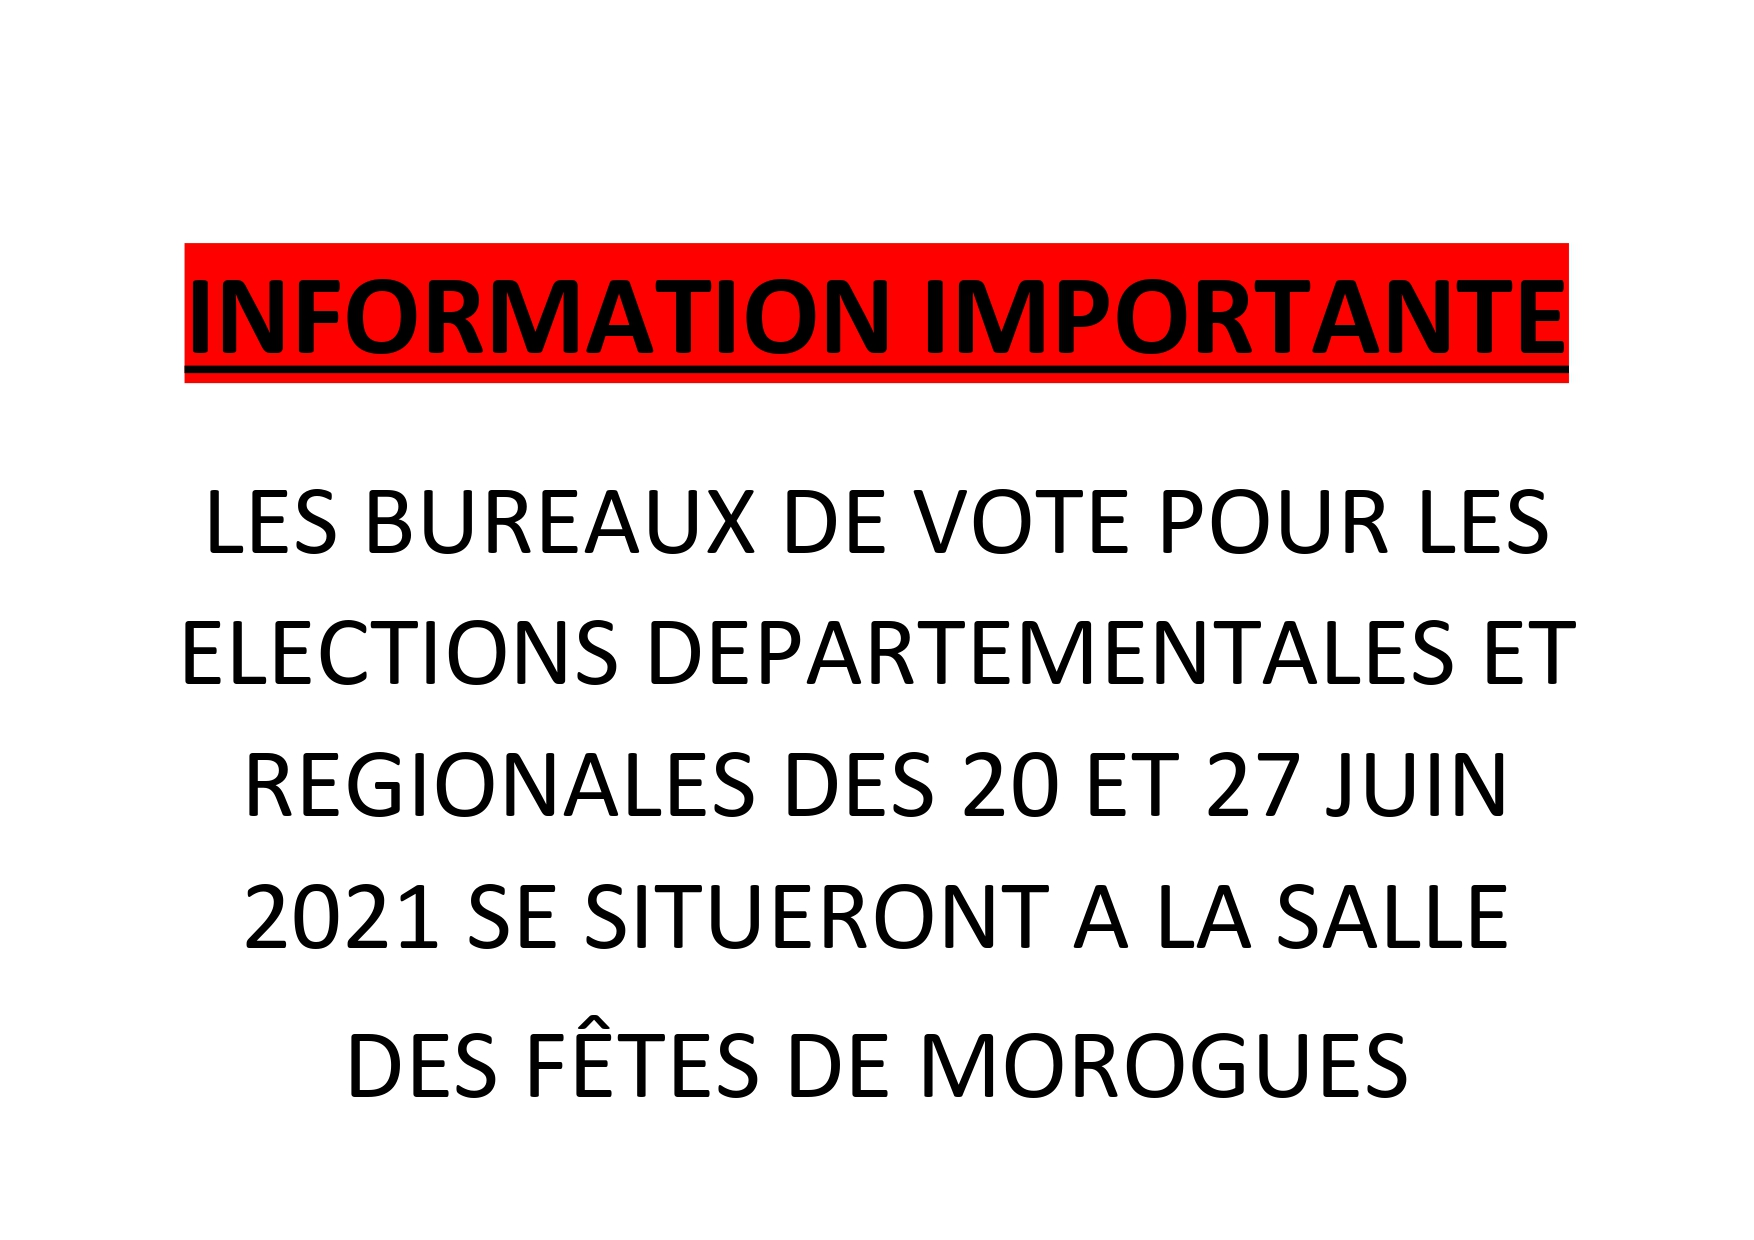 Information importante_page-0001